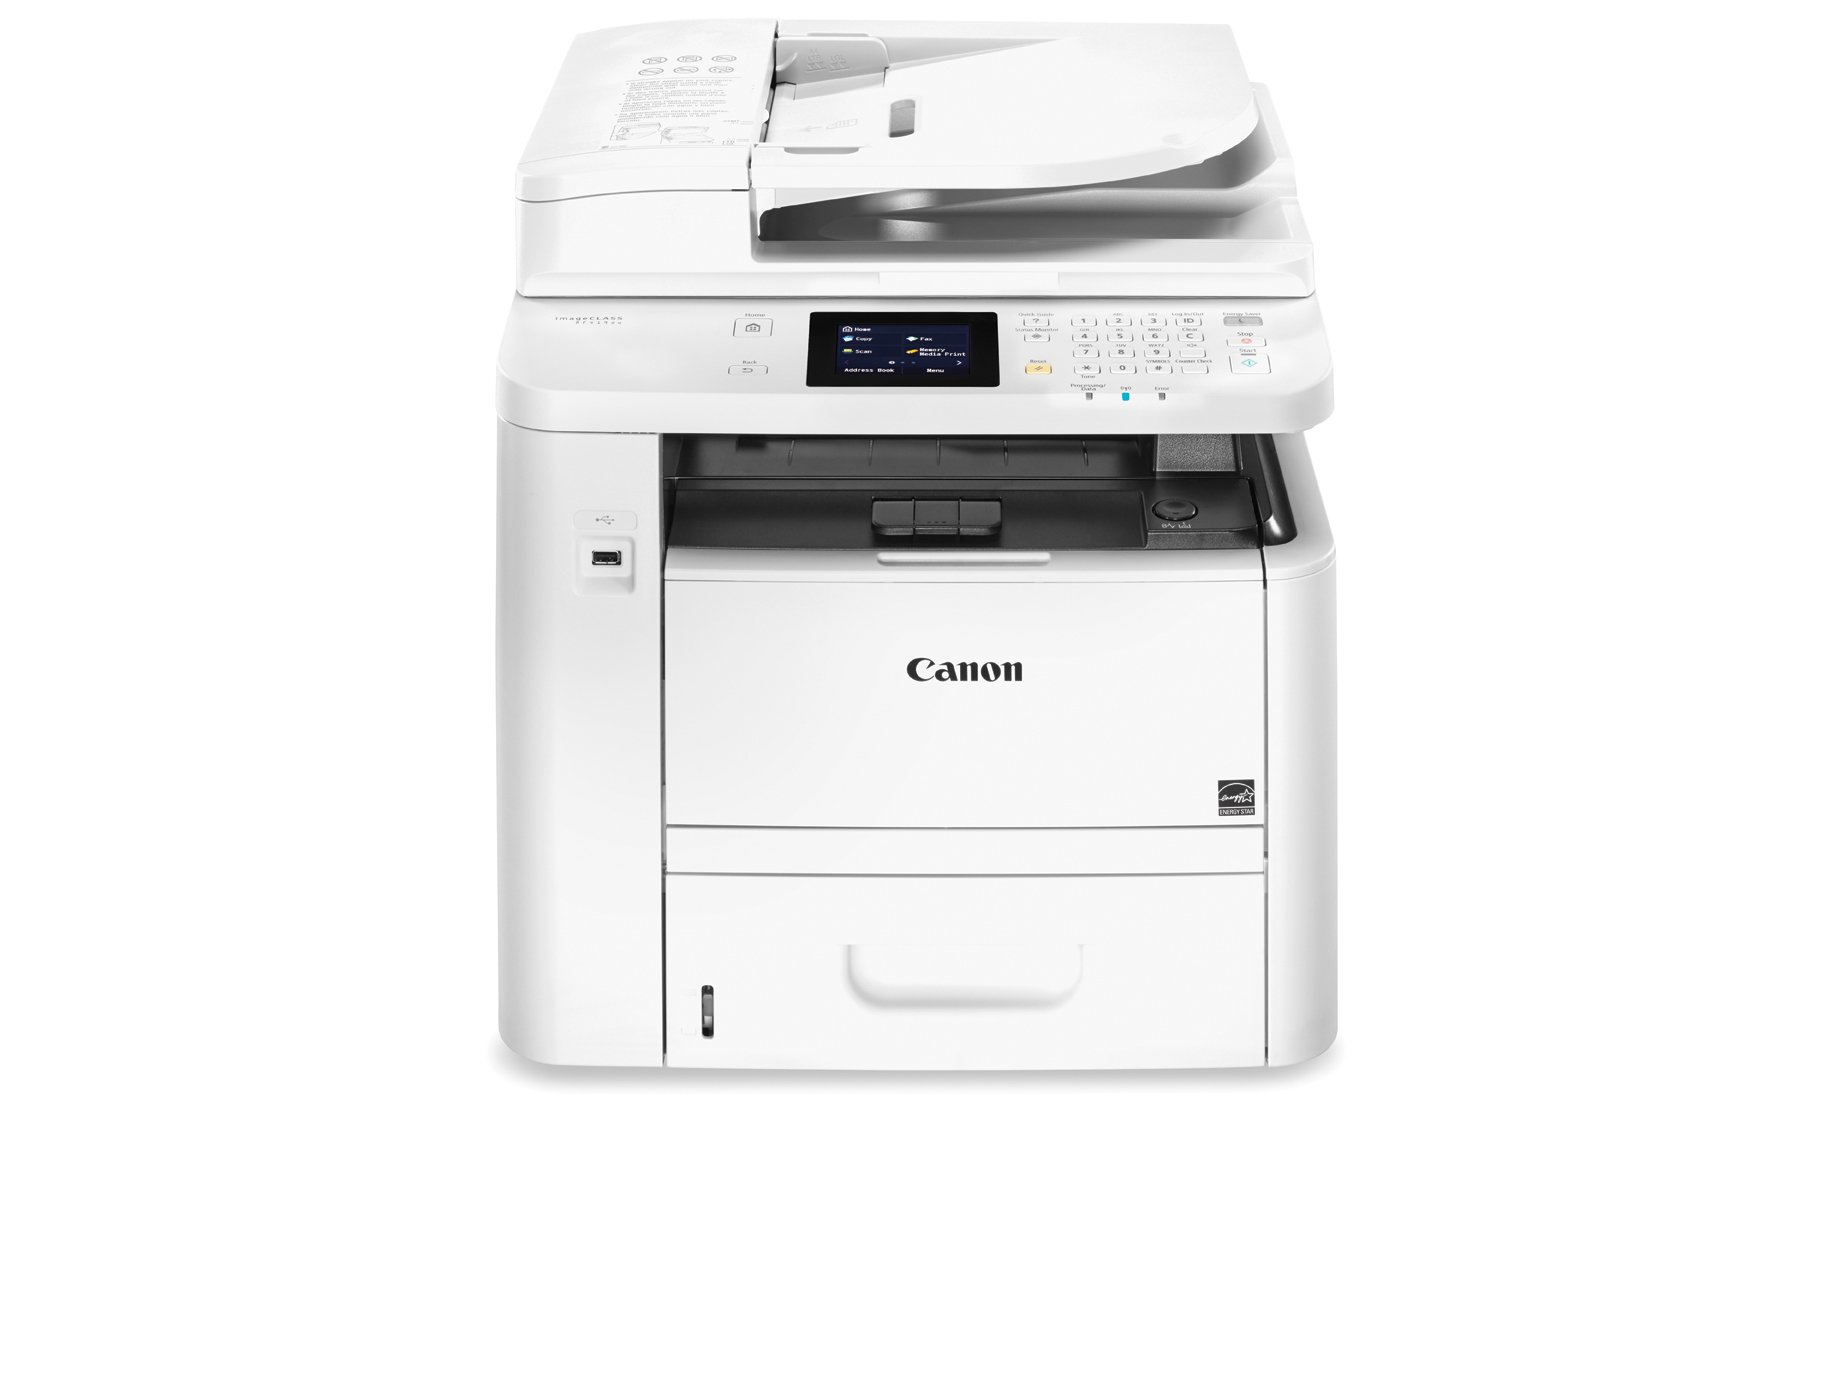 Canon Lasers ImageCLASS MF419dw Wireless Monochrome Printer with Scanner, Copier & Fax by Canon